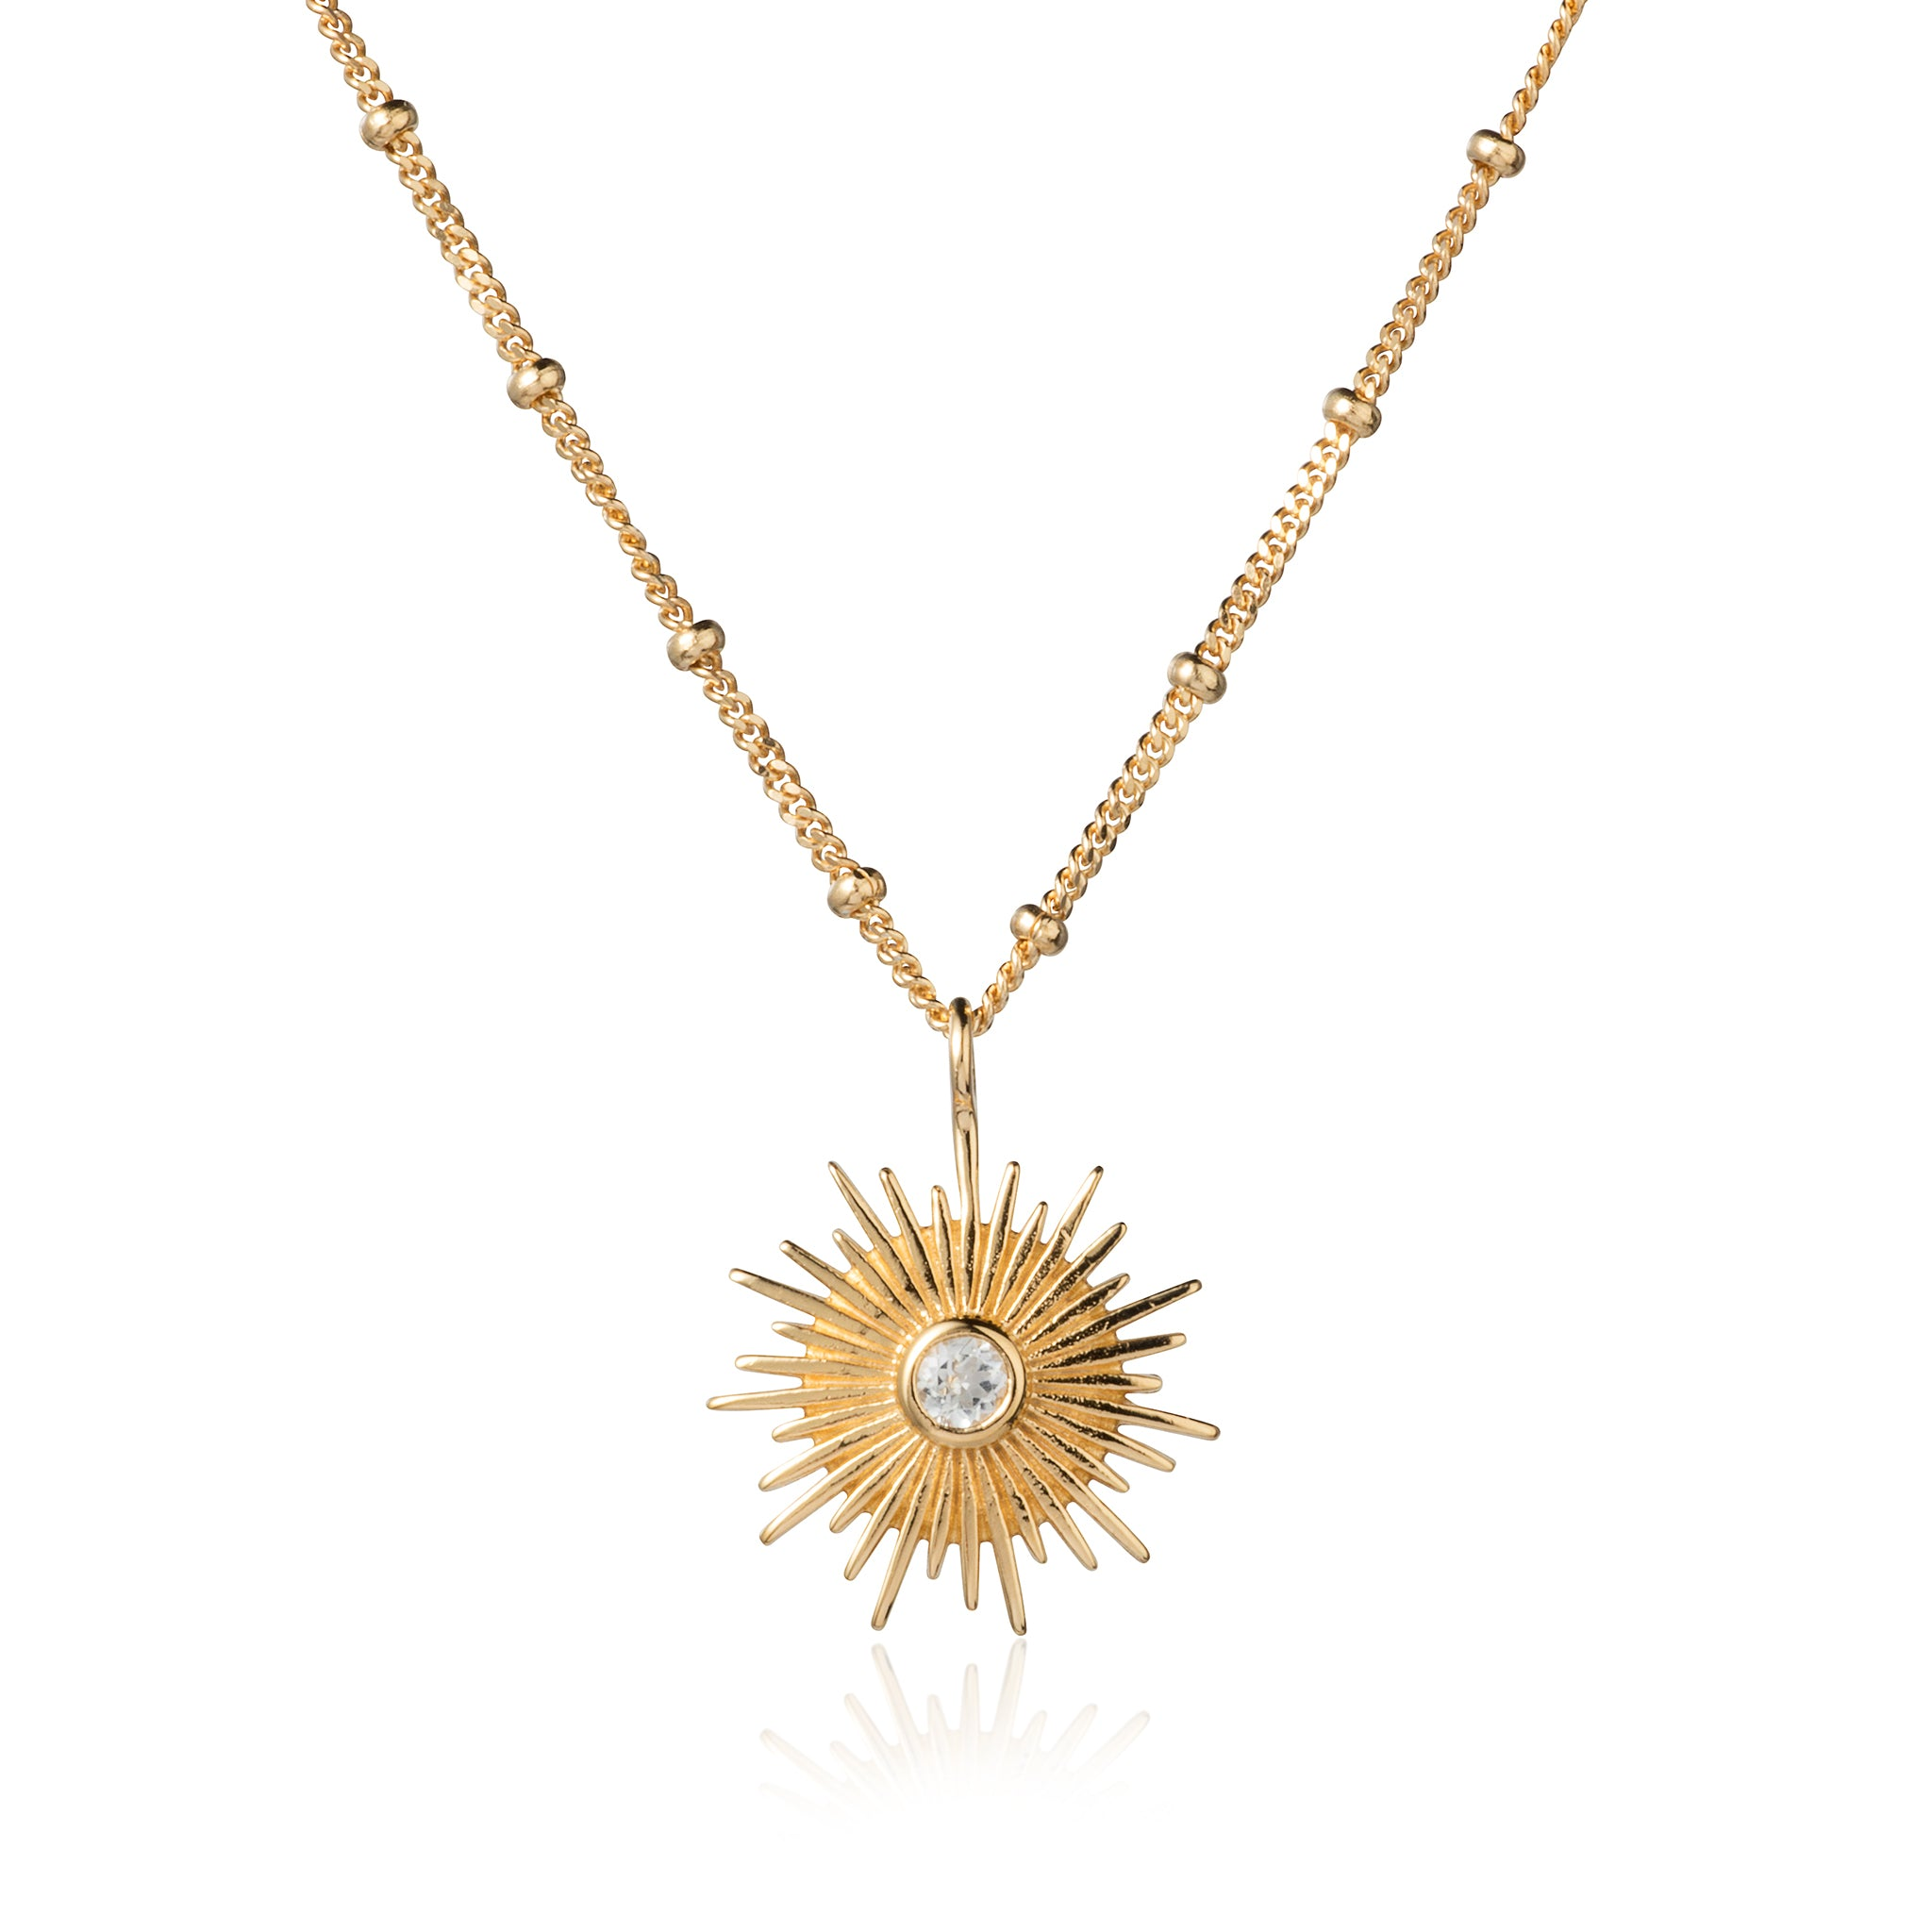 Gold and White Topaz Sun Necklace